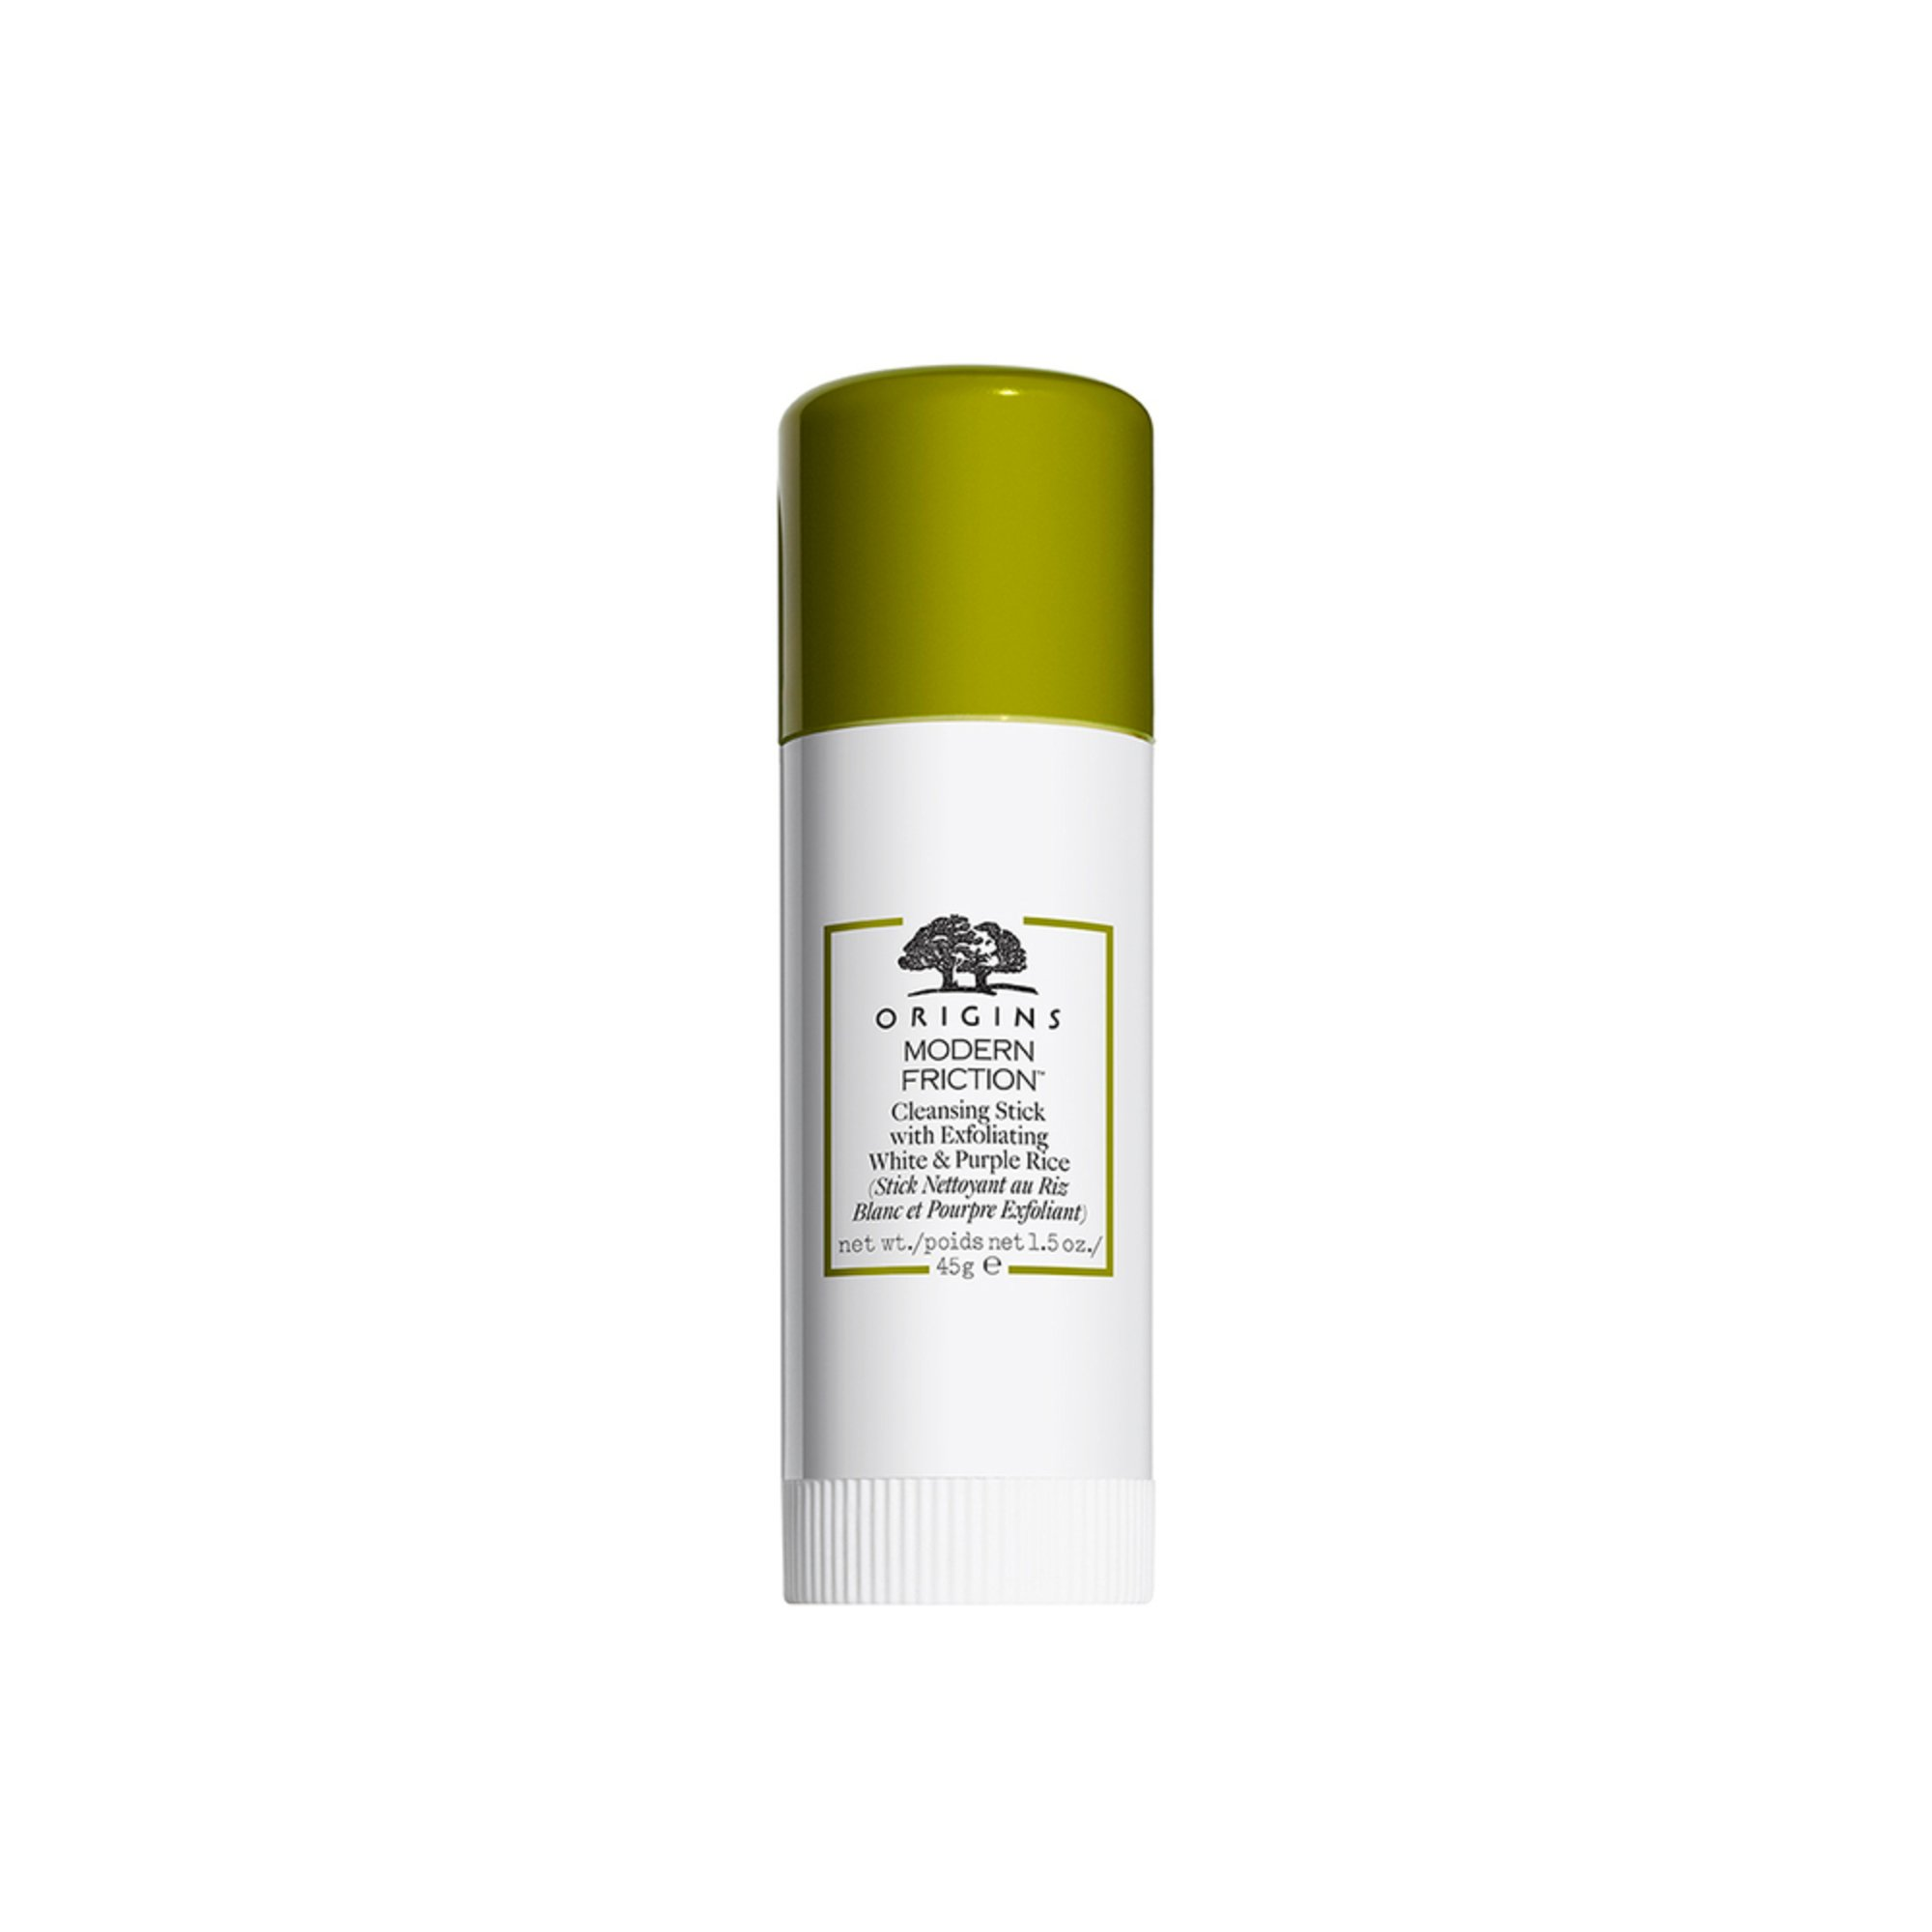 Origins Modern Friction Cleansing Stick